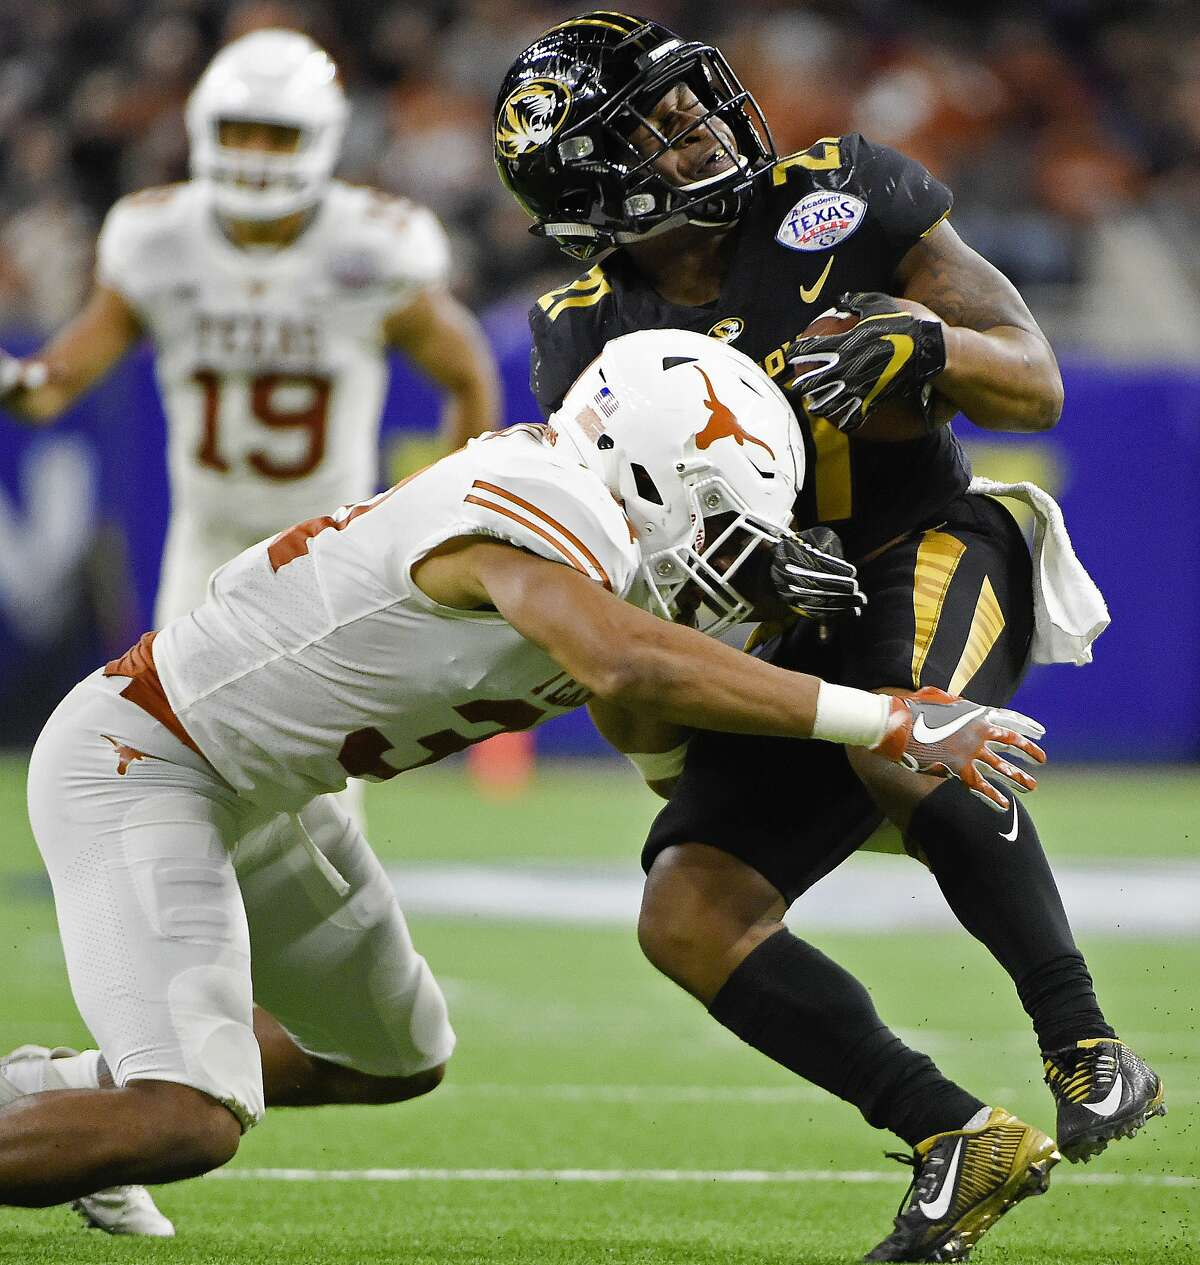 DB Jason Hall, Texas Hall finished his four-year career at Texas with 162 total tackles, three interceptions, five sacks and 10 passes defensed.